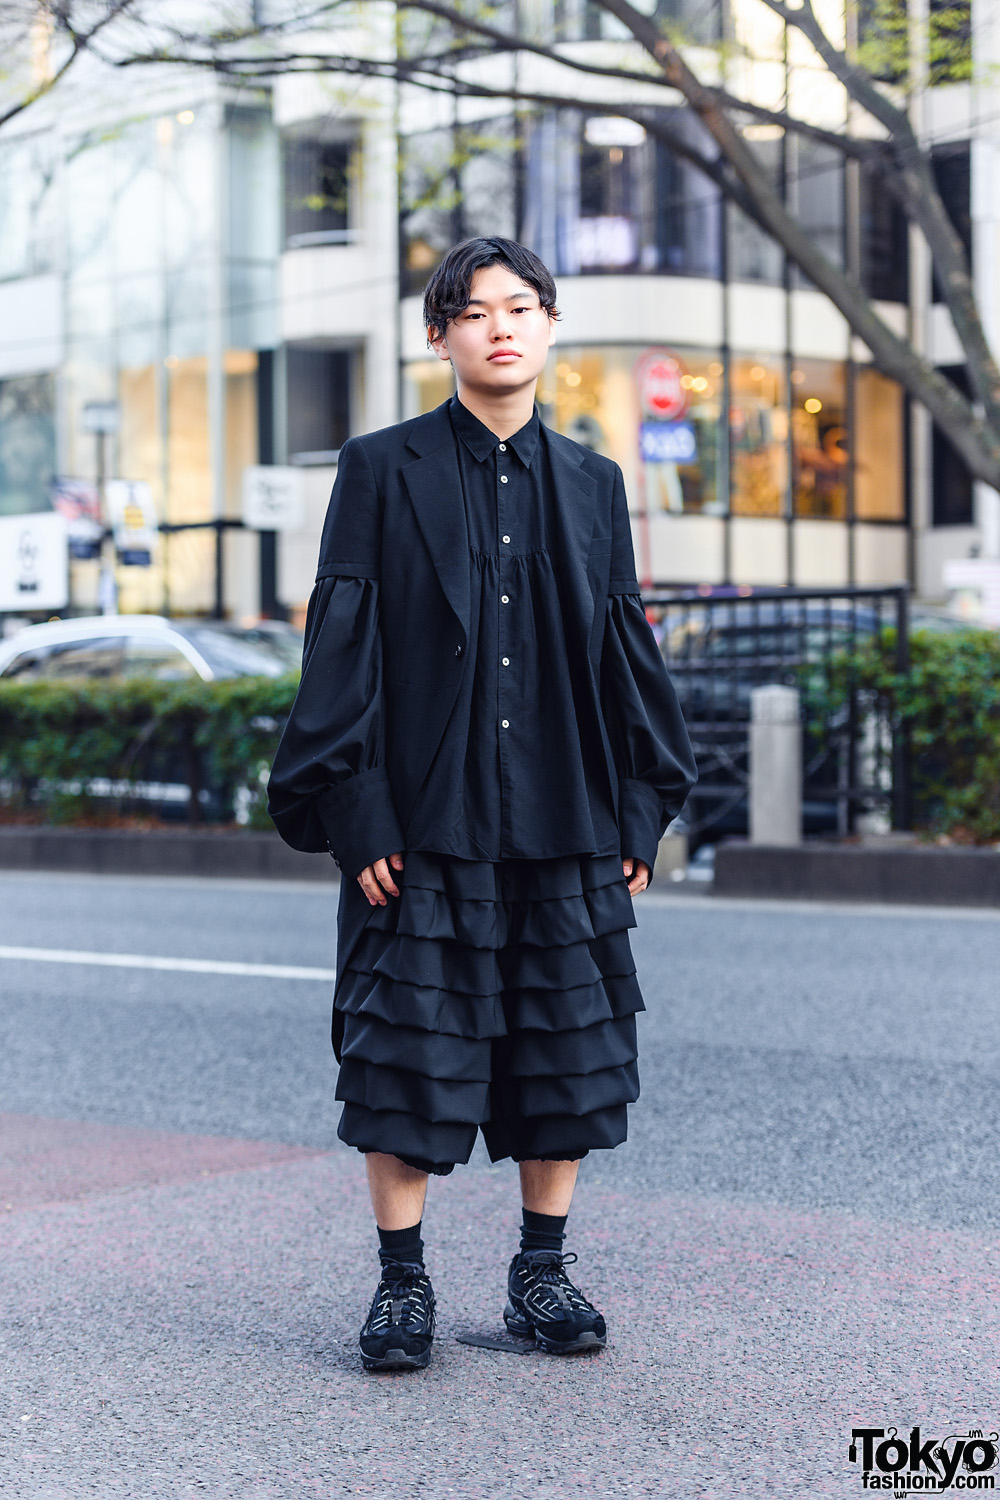 All Black Comme des Garcons Style w/ Short Sleeve Penguin Tail Coat, Balloon Sleeve Shirt, Ruffle Pants & Sneakers